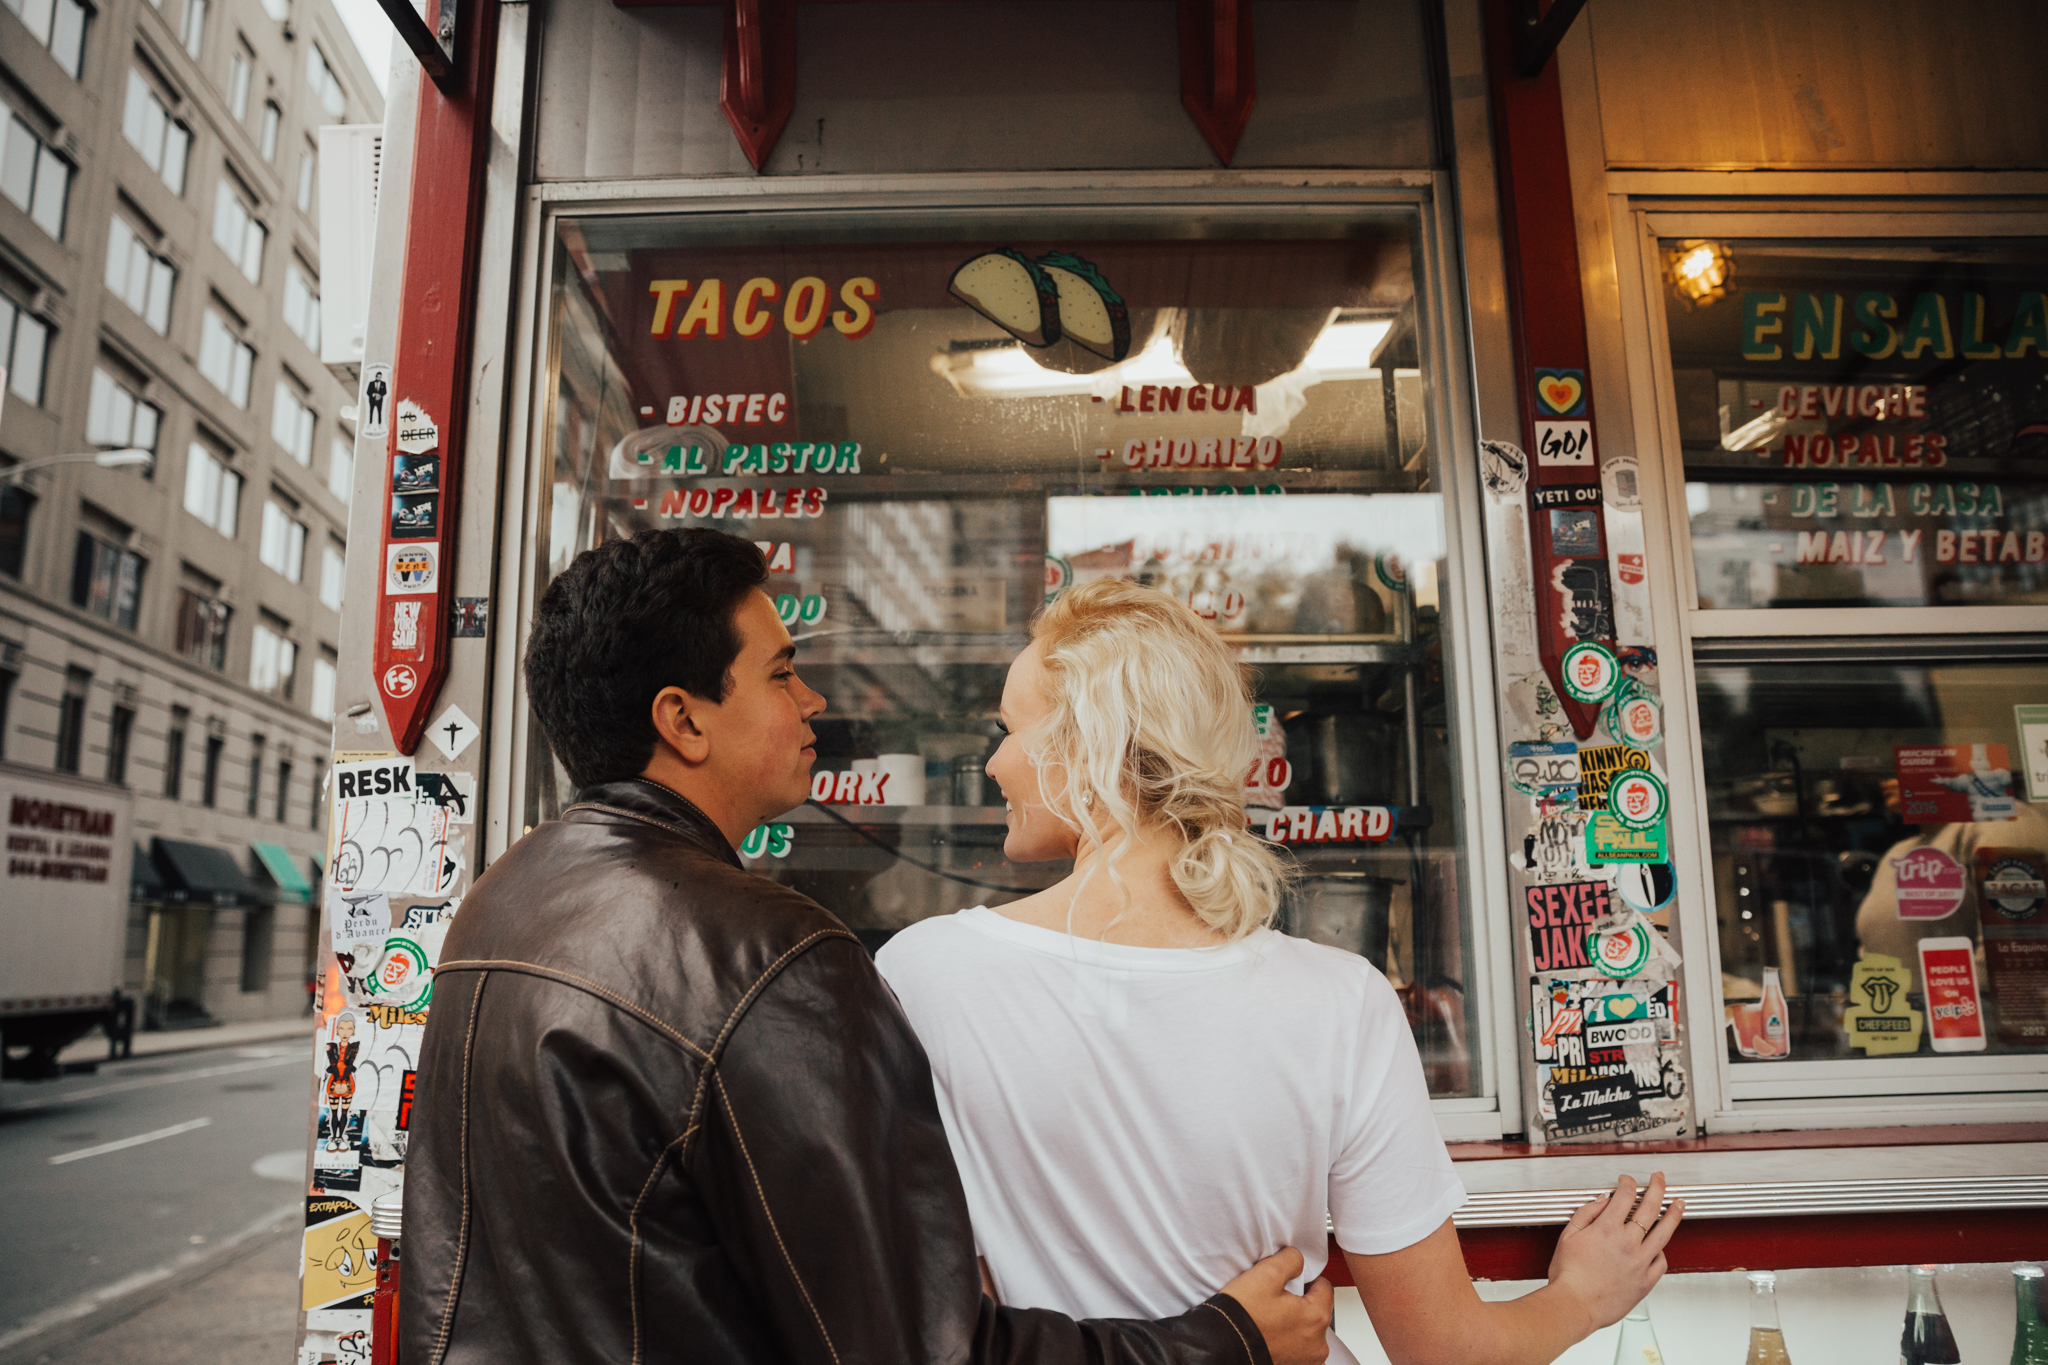 couple ordering tacos